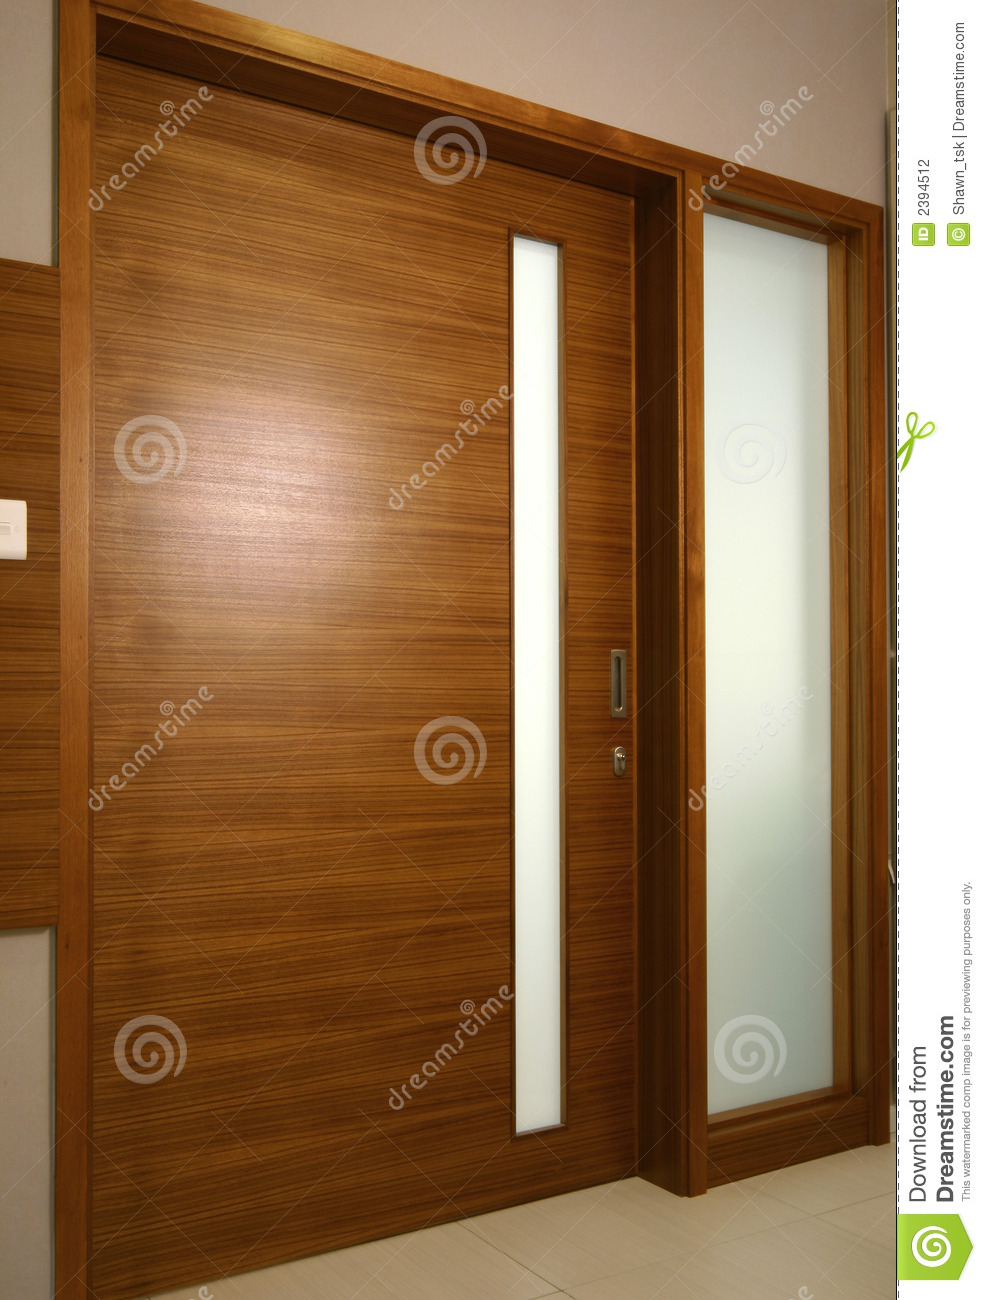 Interior design sliding door stock photo image of for Inside sliding doors